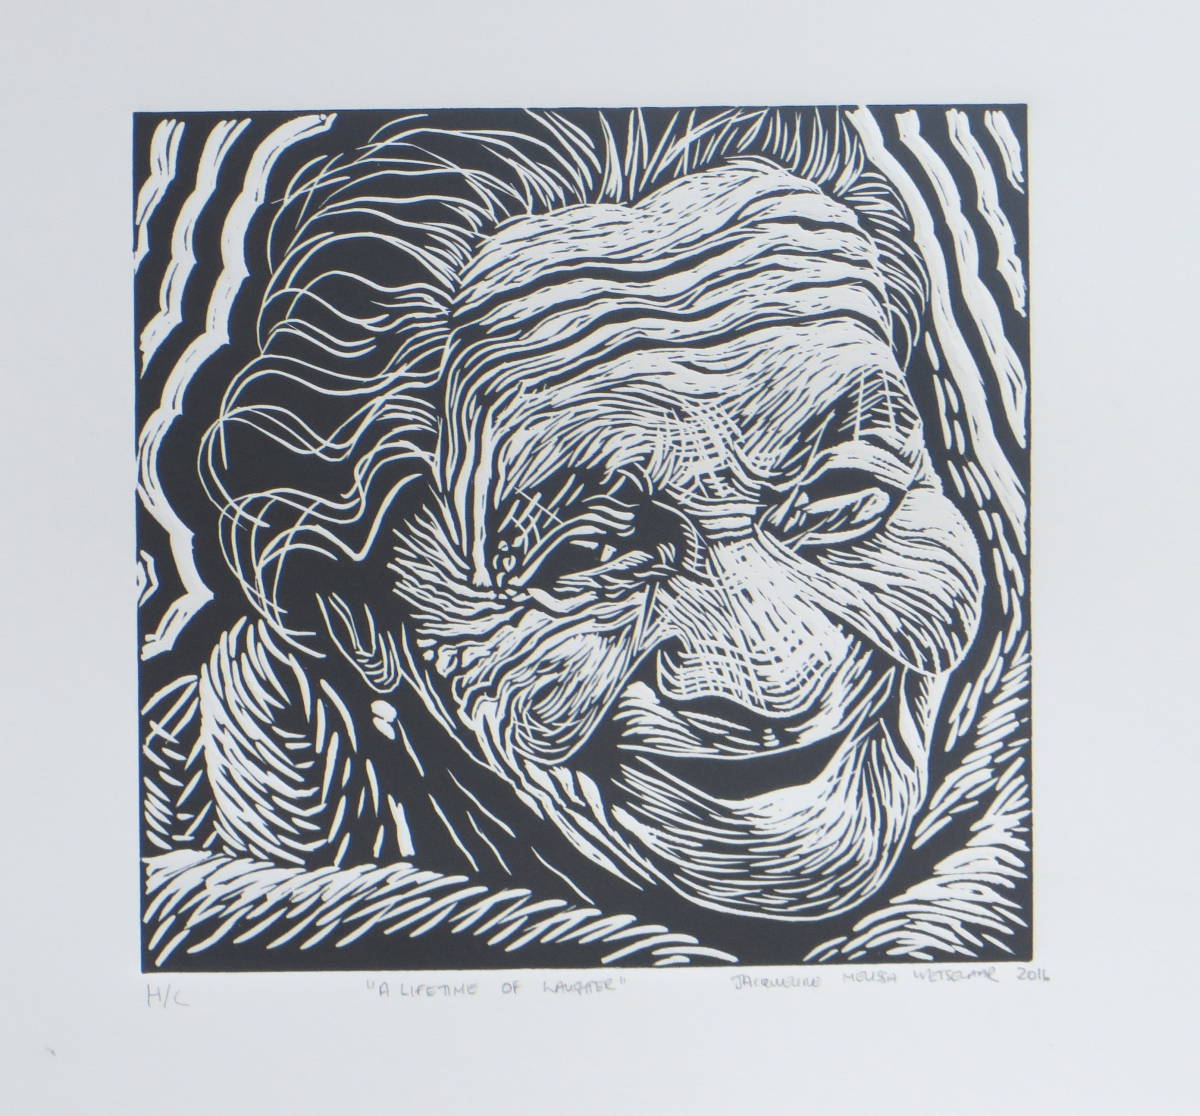 A lifetime of laughter   Jacque Wetselaar  Linocut  335 x 335 mm  Edition of 20  R 1 340.00 excl. vat